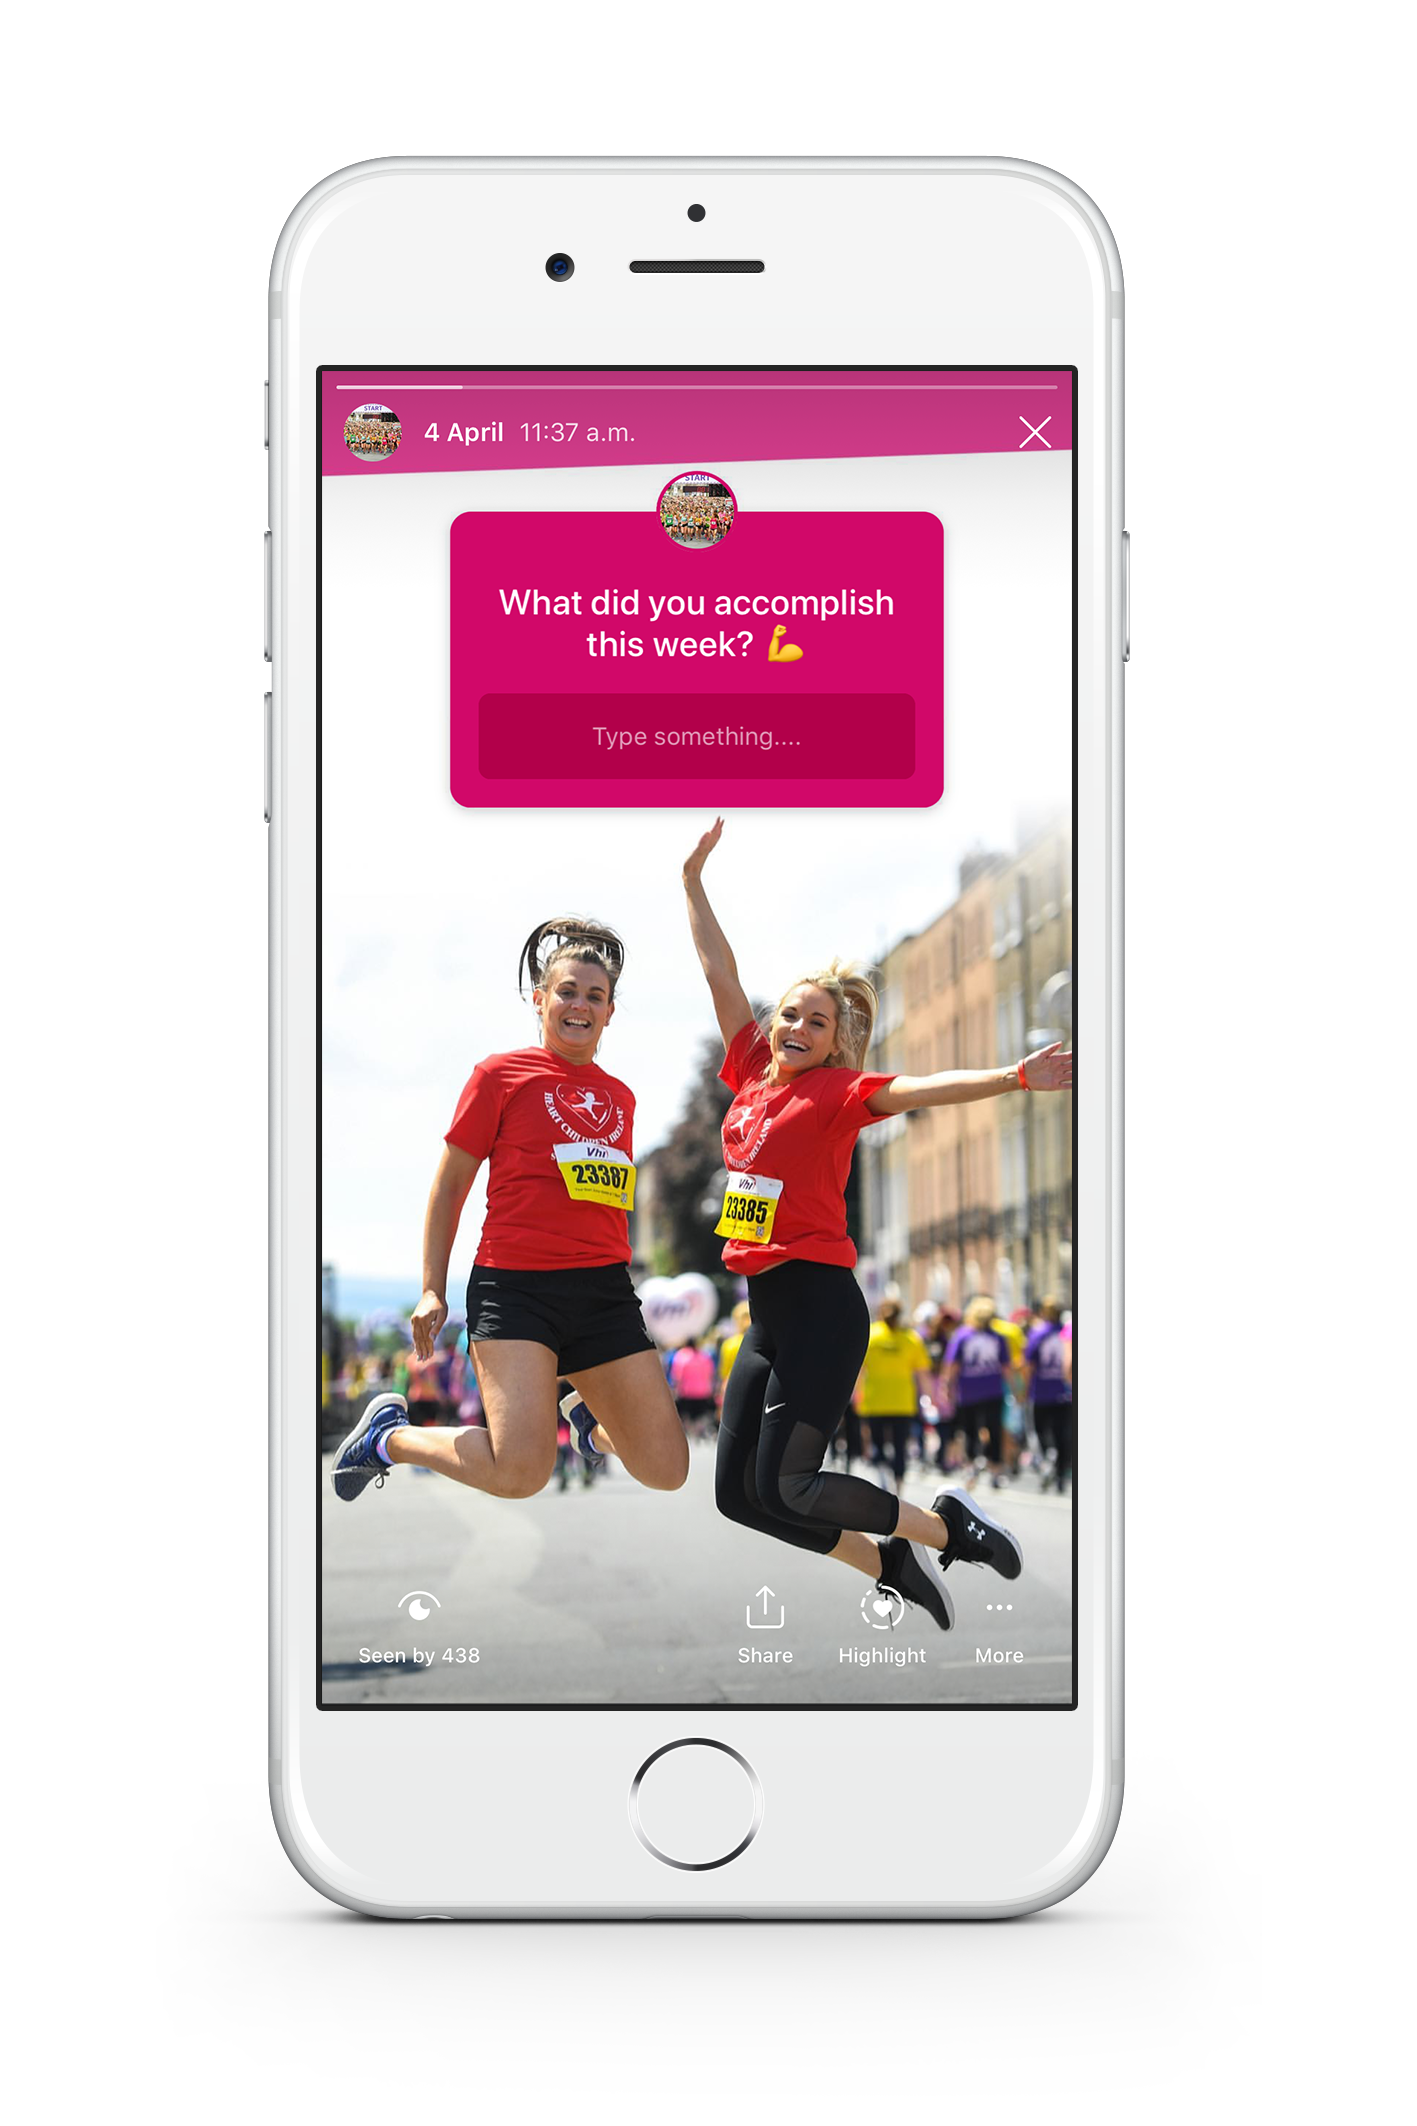 Race Event Marketing: The Ultimate Guide. An image of a white iPhone 8 with a screenshot of an Instagram story. In the foreground of the image is two girls jumping in the air in excitement after completing the marathon. The background has an instagram question box asking